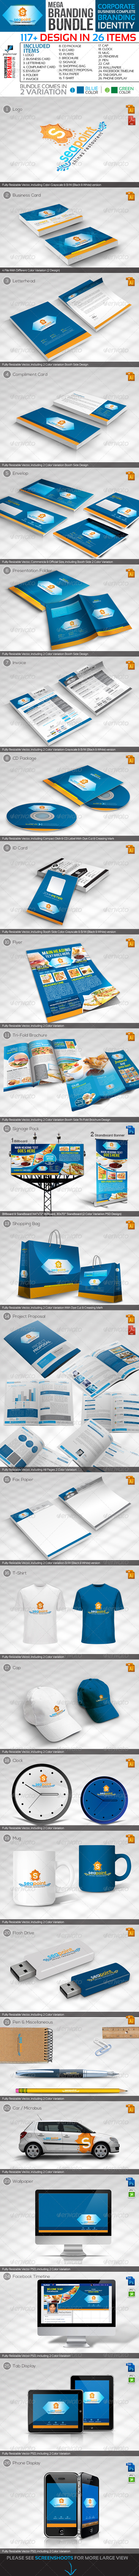 GraphicRiver SeaPoint Corporate Business Mega Branding Bundle 4862914